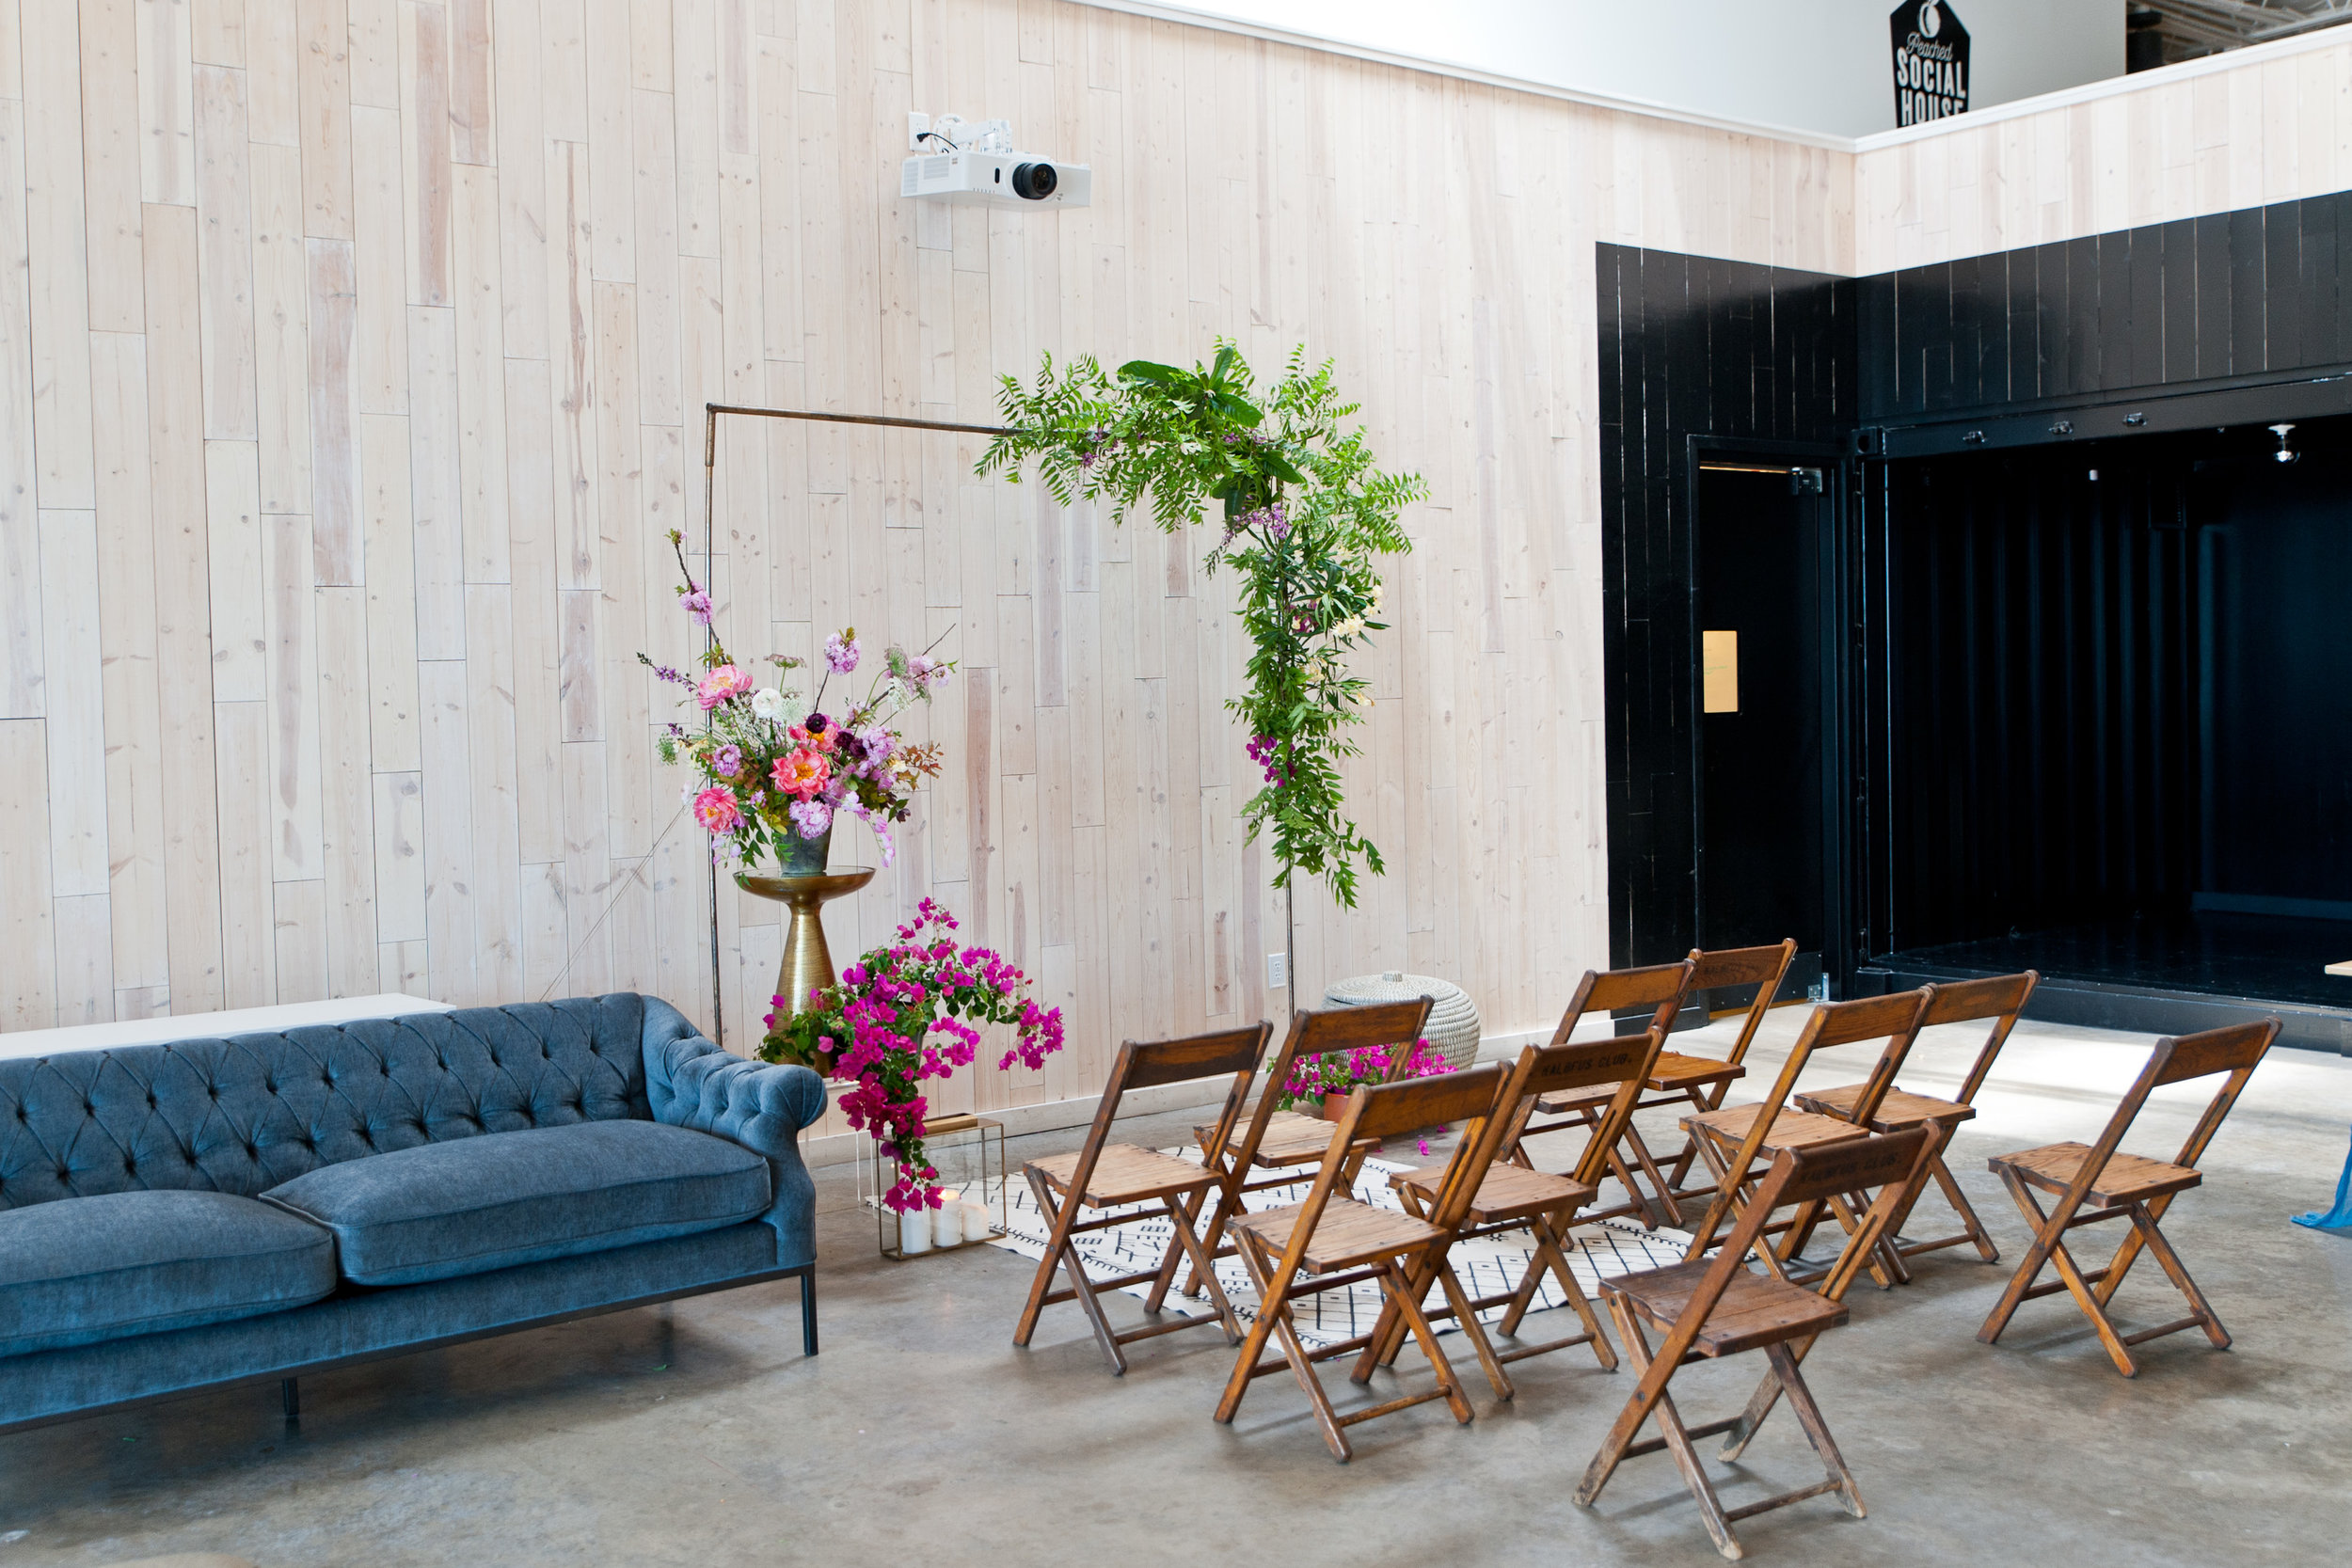 Urban-Wedding-Venues-in-Austin-Peached-Social-House-Inked-Fingers